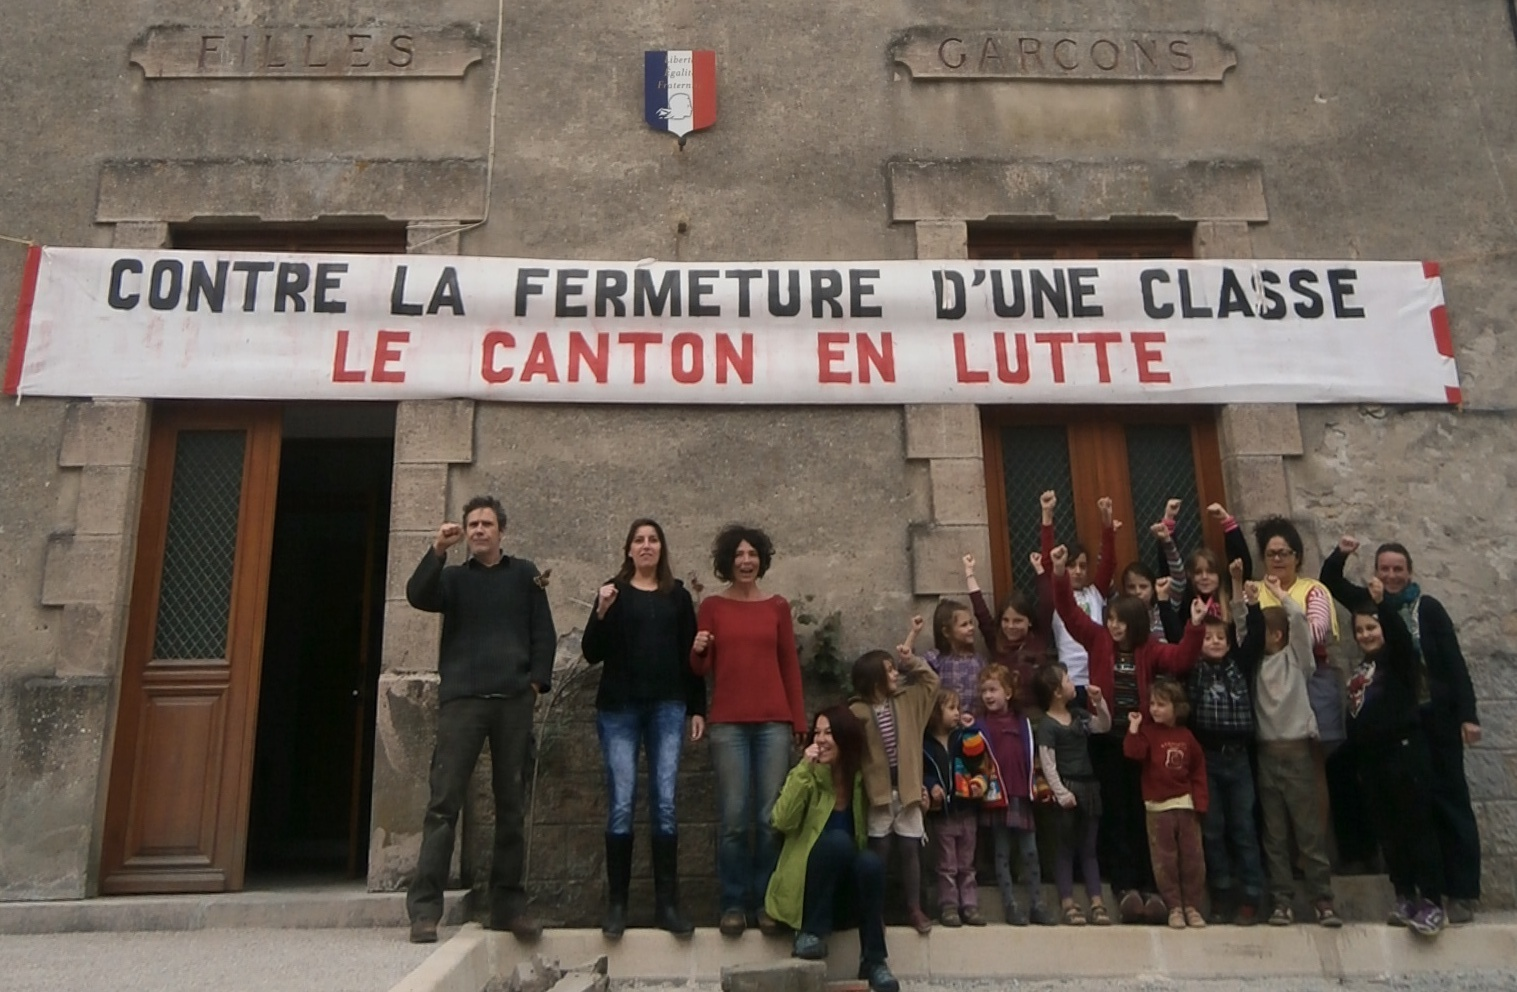 Photo of ALZON Des parents d'élèves se mobilisent contre la fermeture d'une classe de maternelle